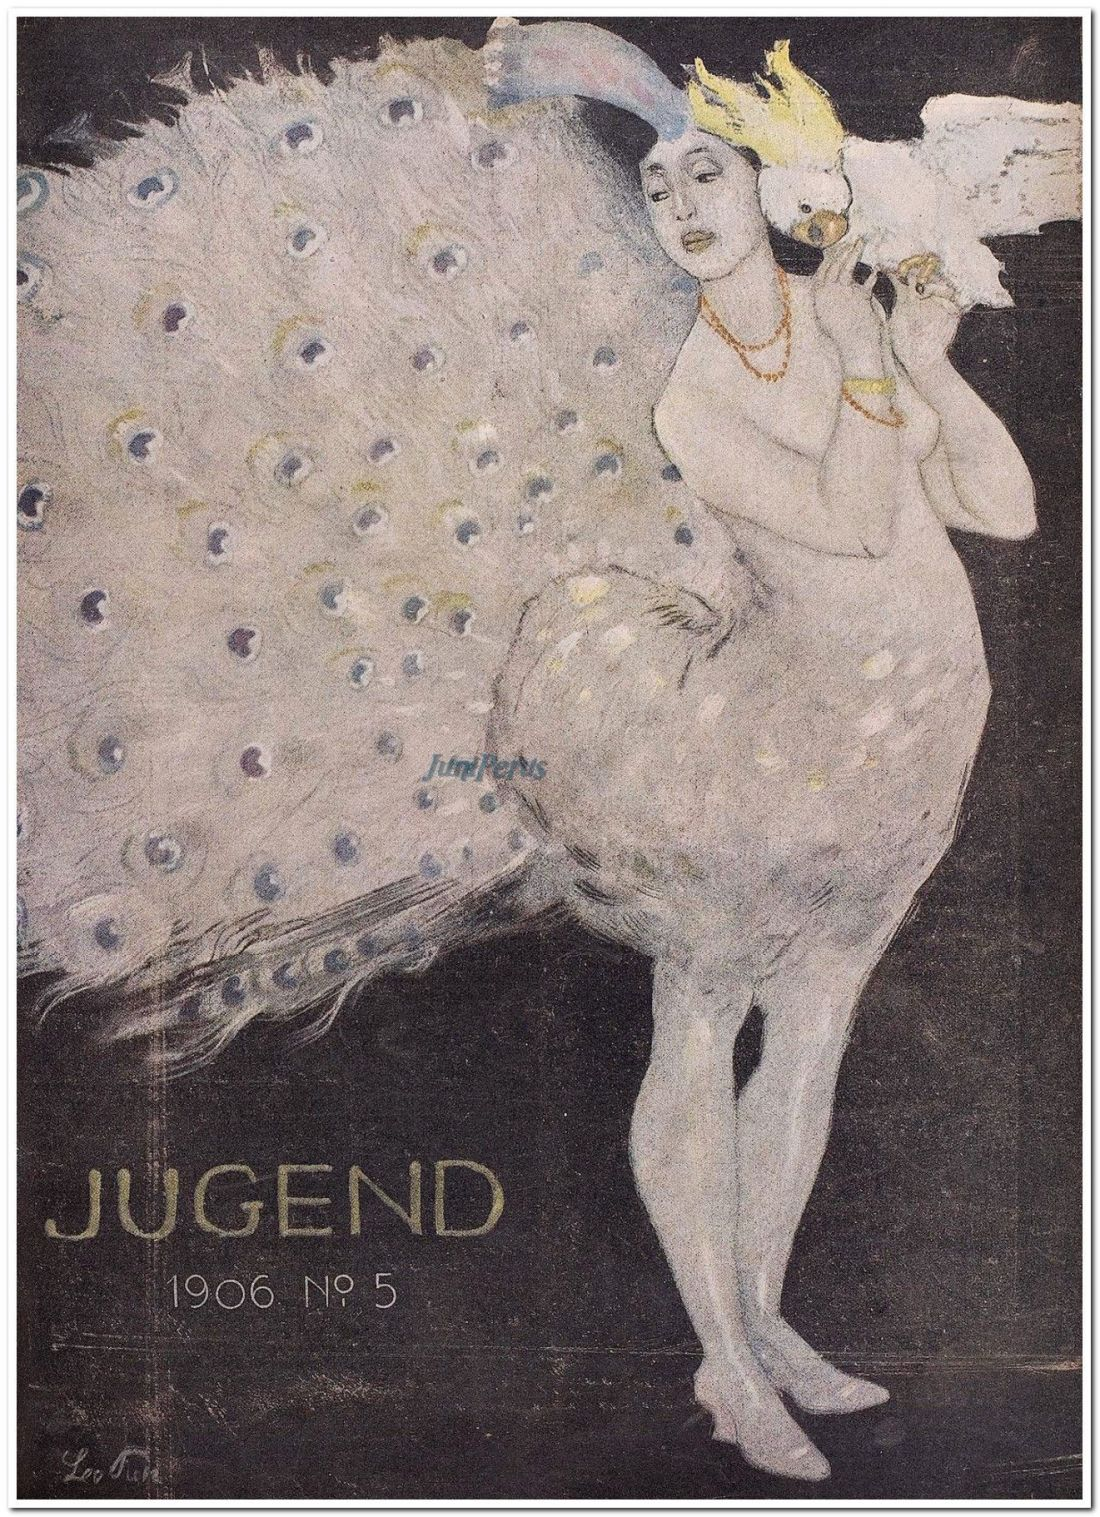 Cover art for Jugend. 1906, Number 5.